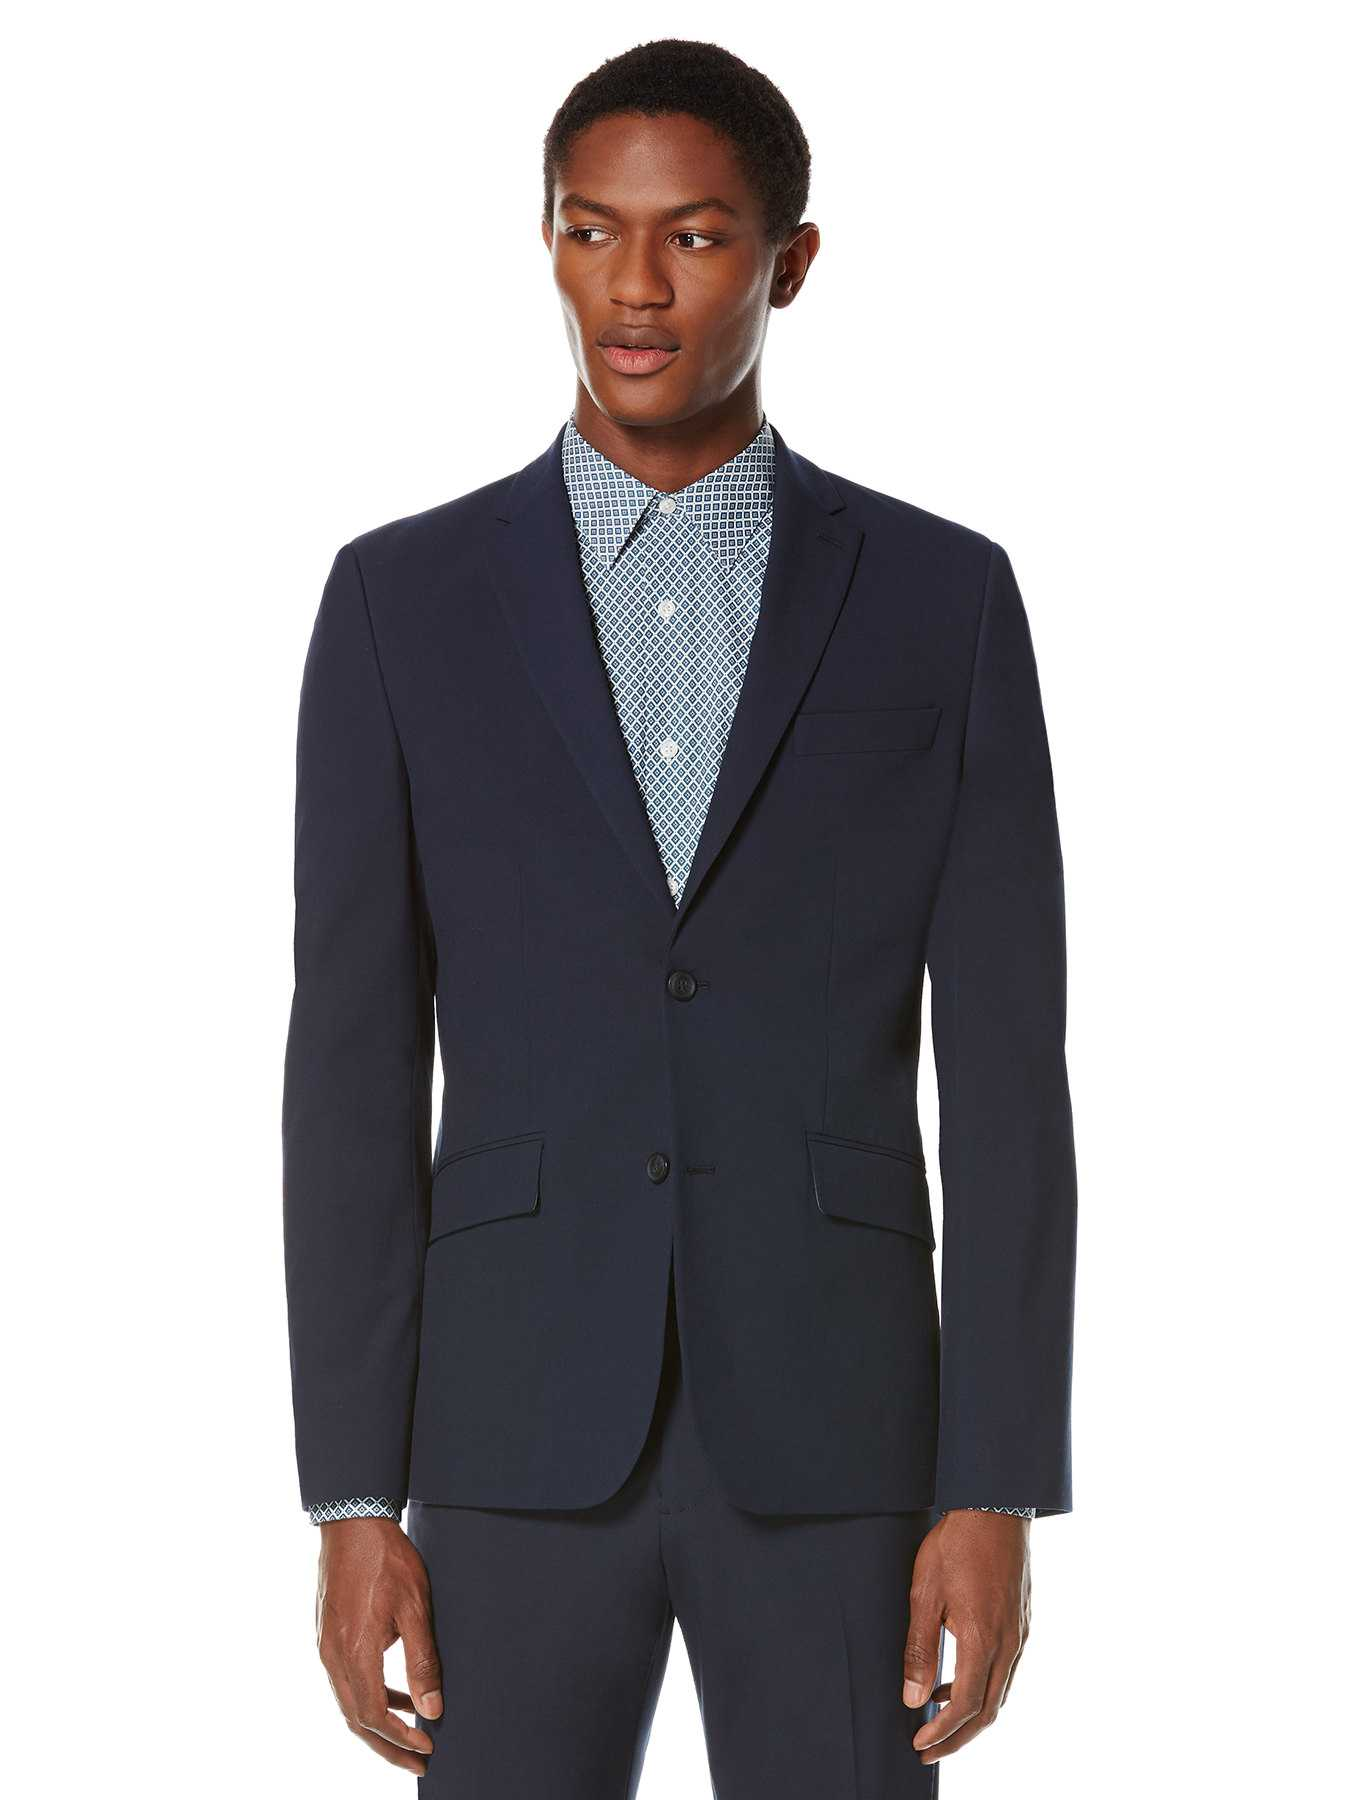 Find Machine washable suits from the Sale department at Debenhams. Shop a wide range of Suit jackets products and more at our online shop today.